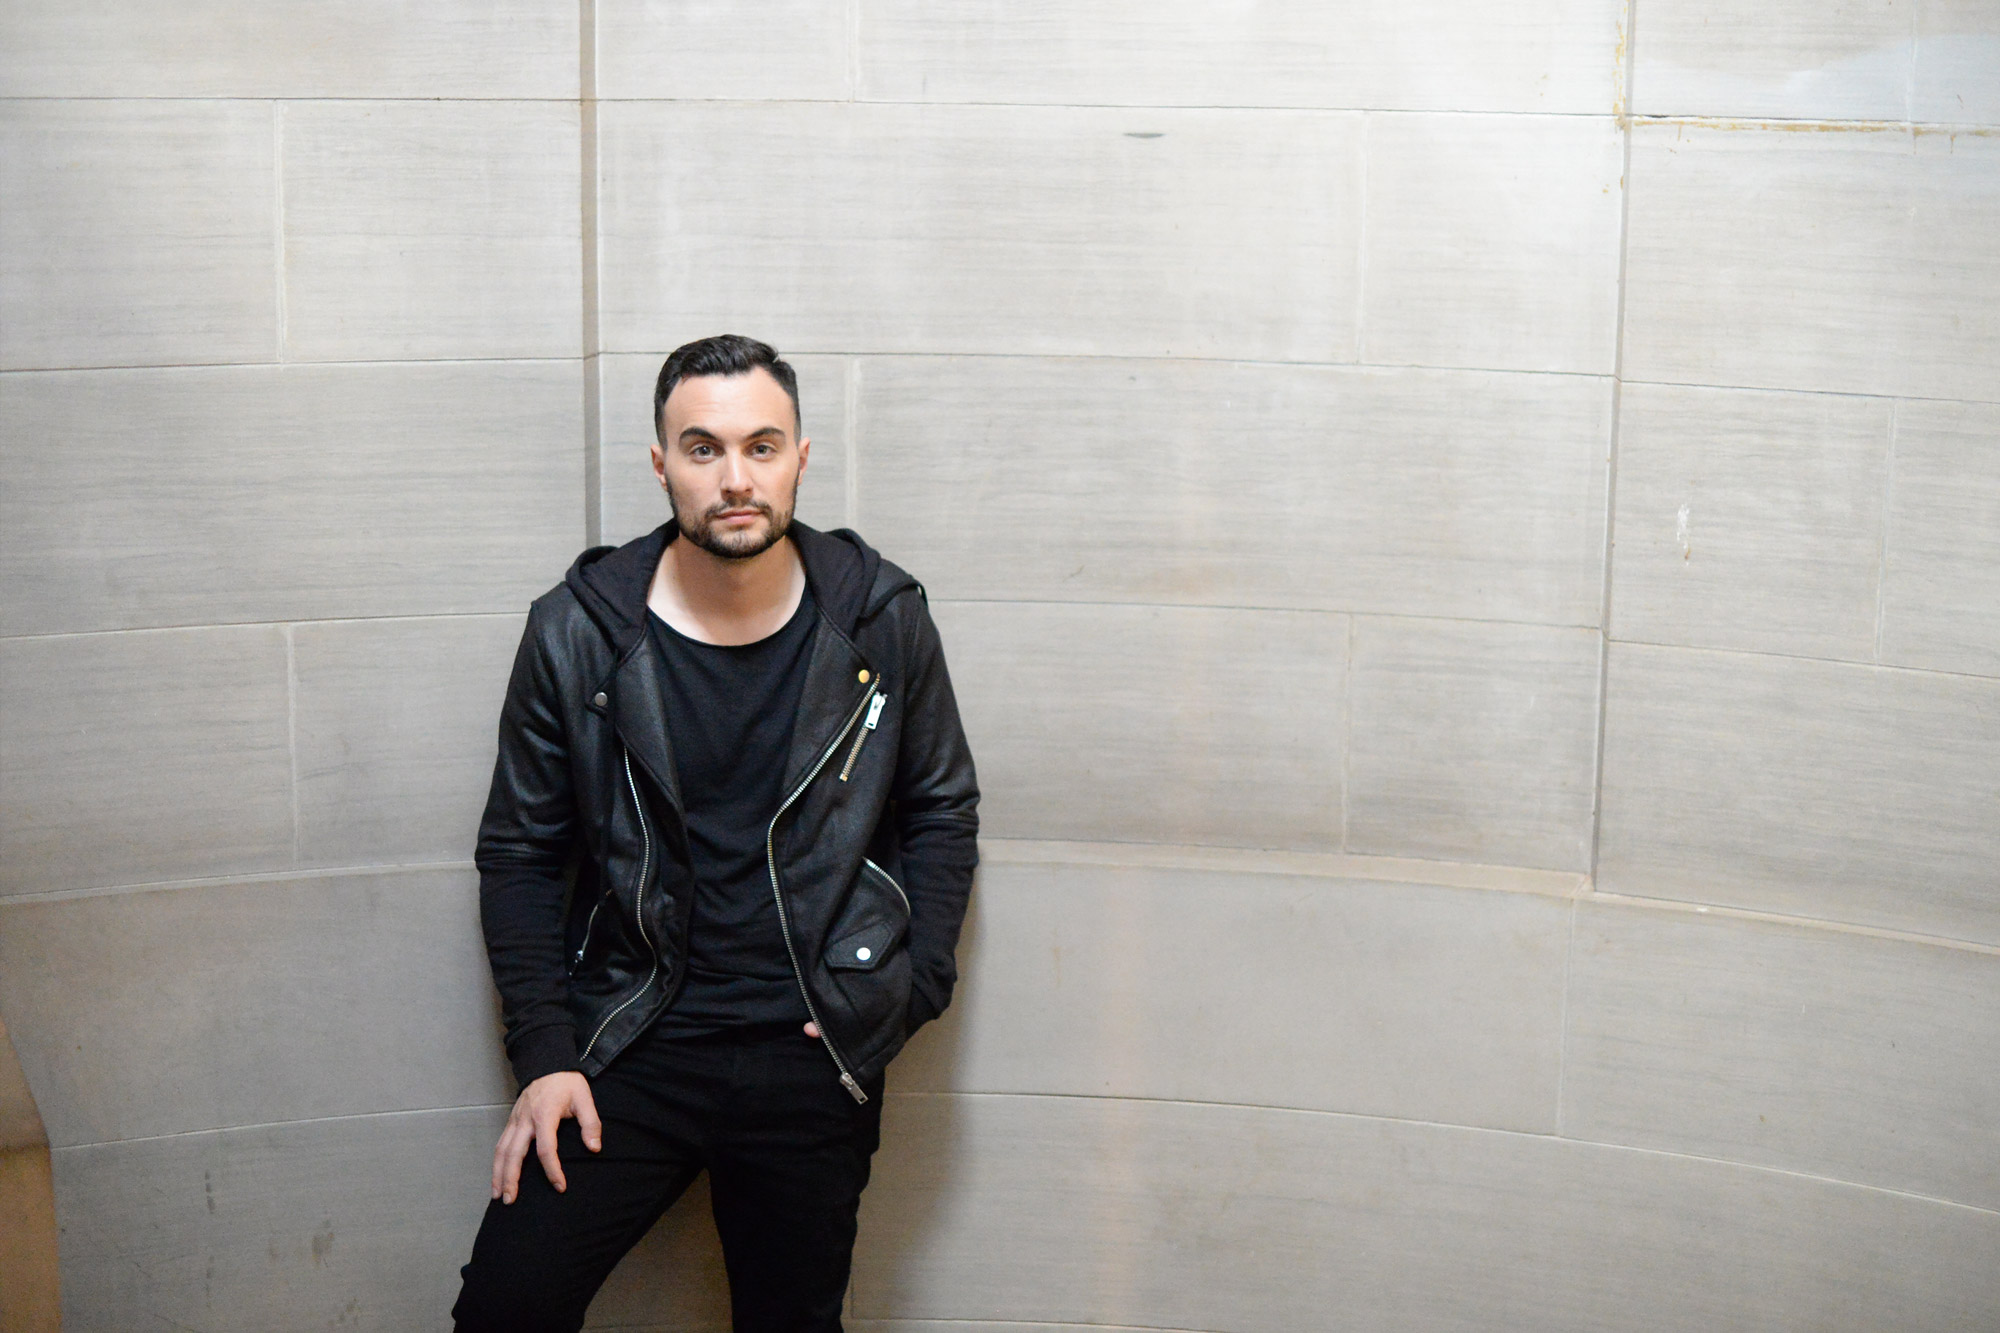 JessE Clegg - Jesse Clegg is a South African singer-songwriter whose three studio albums, When I Wake Up, his 2011 follow up Life on Mars, and his latest, Things Unseen, have made Clegg a platinum-selling success in his home country.